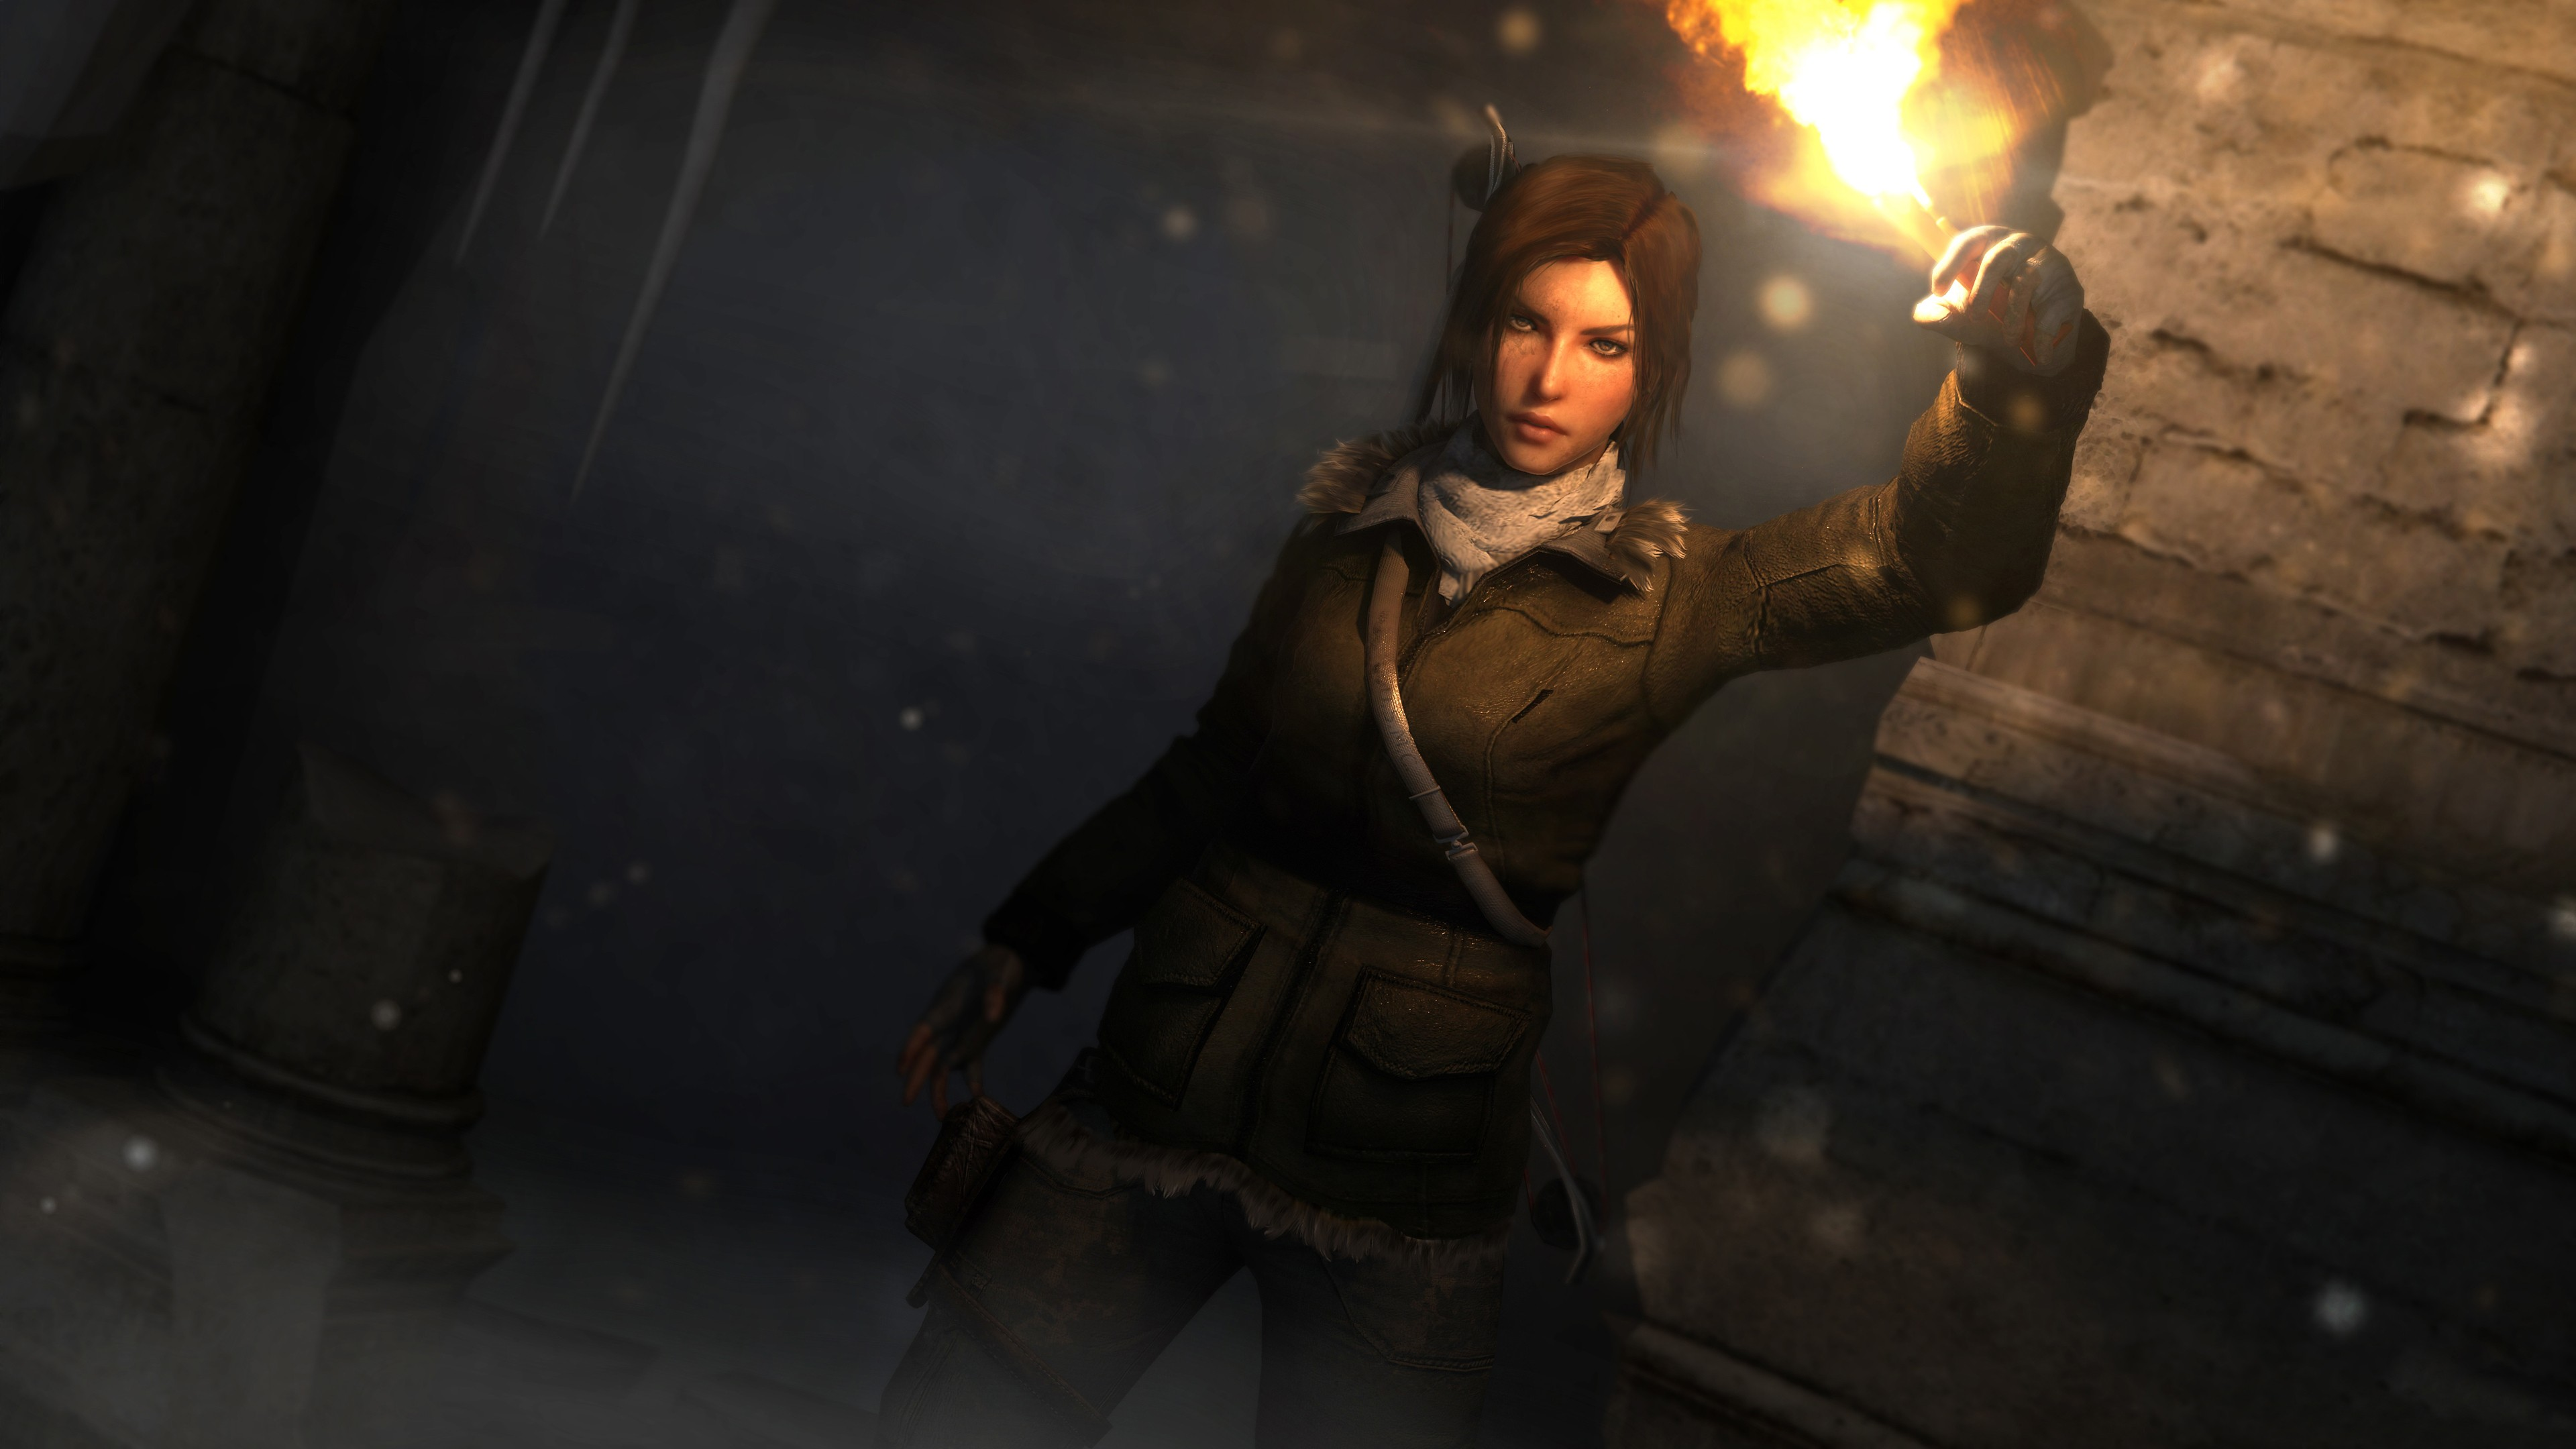 Rise Of The Tomb Raider 4k Ultra HD Wallpaper And